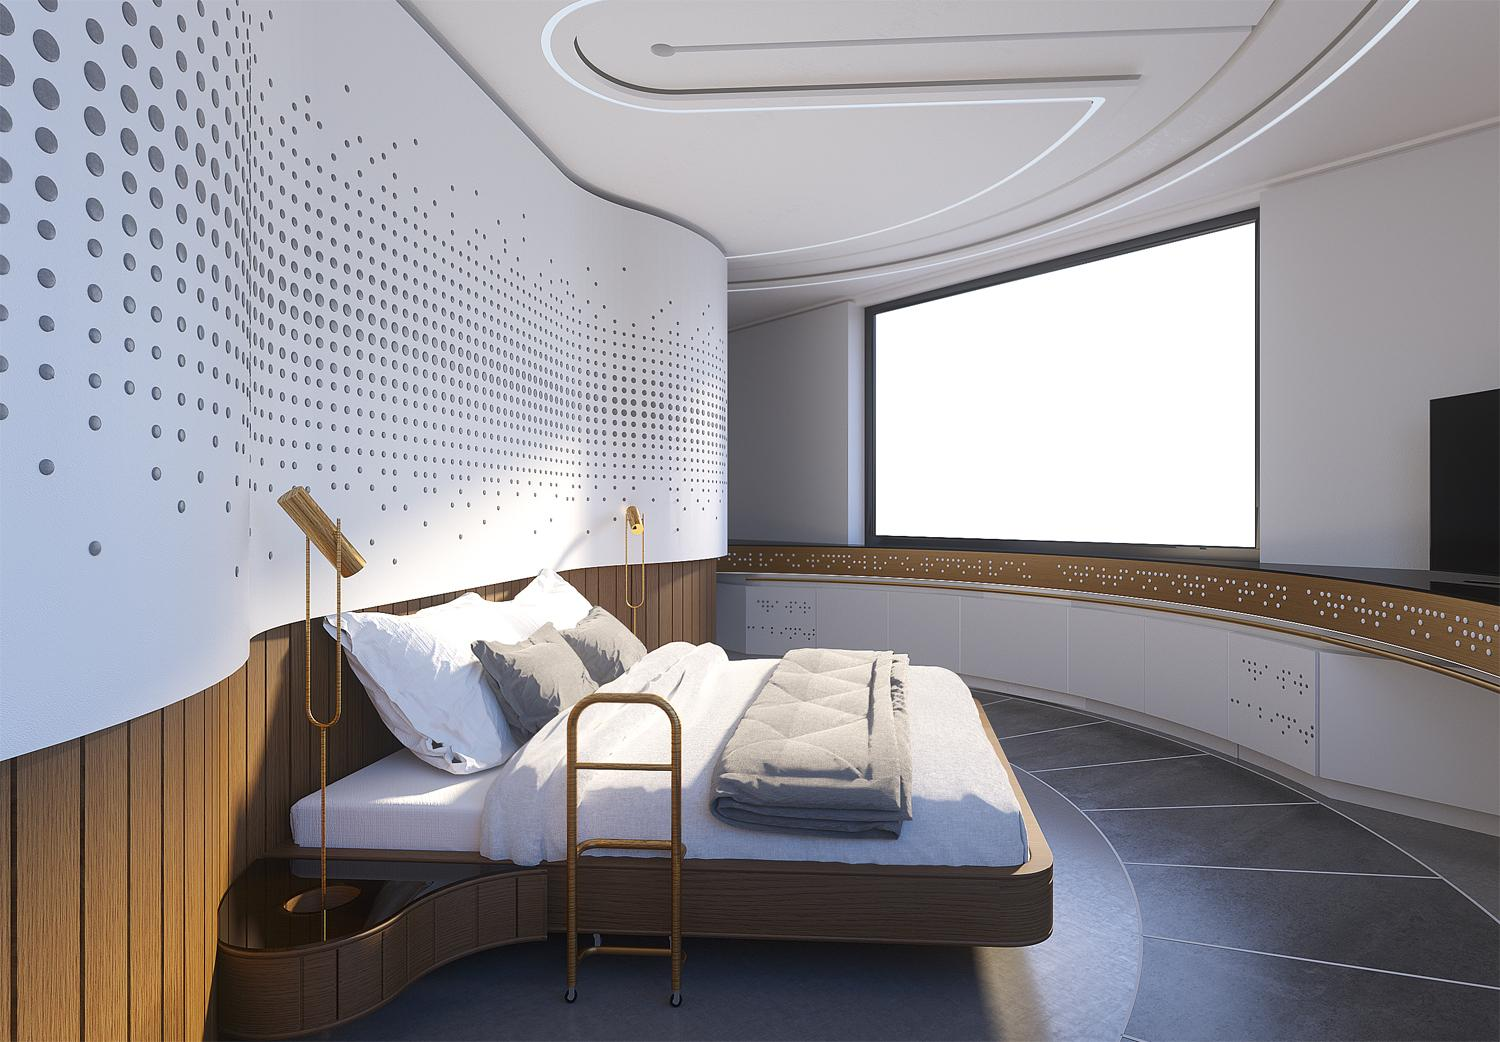 MnM Studio created an accommodation concept based on the senses of smell, taste, sight and sound